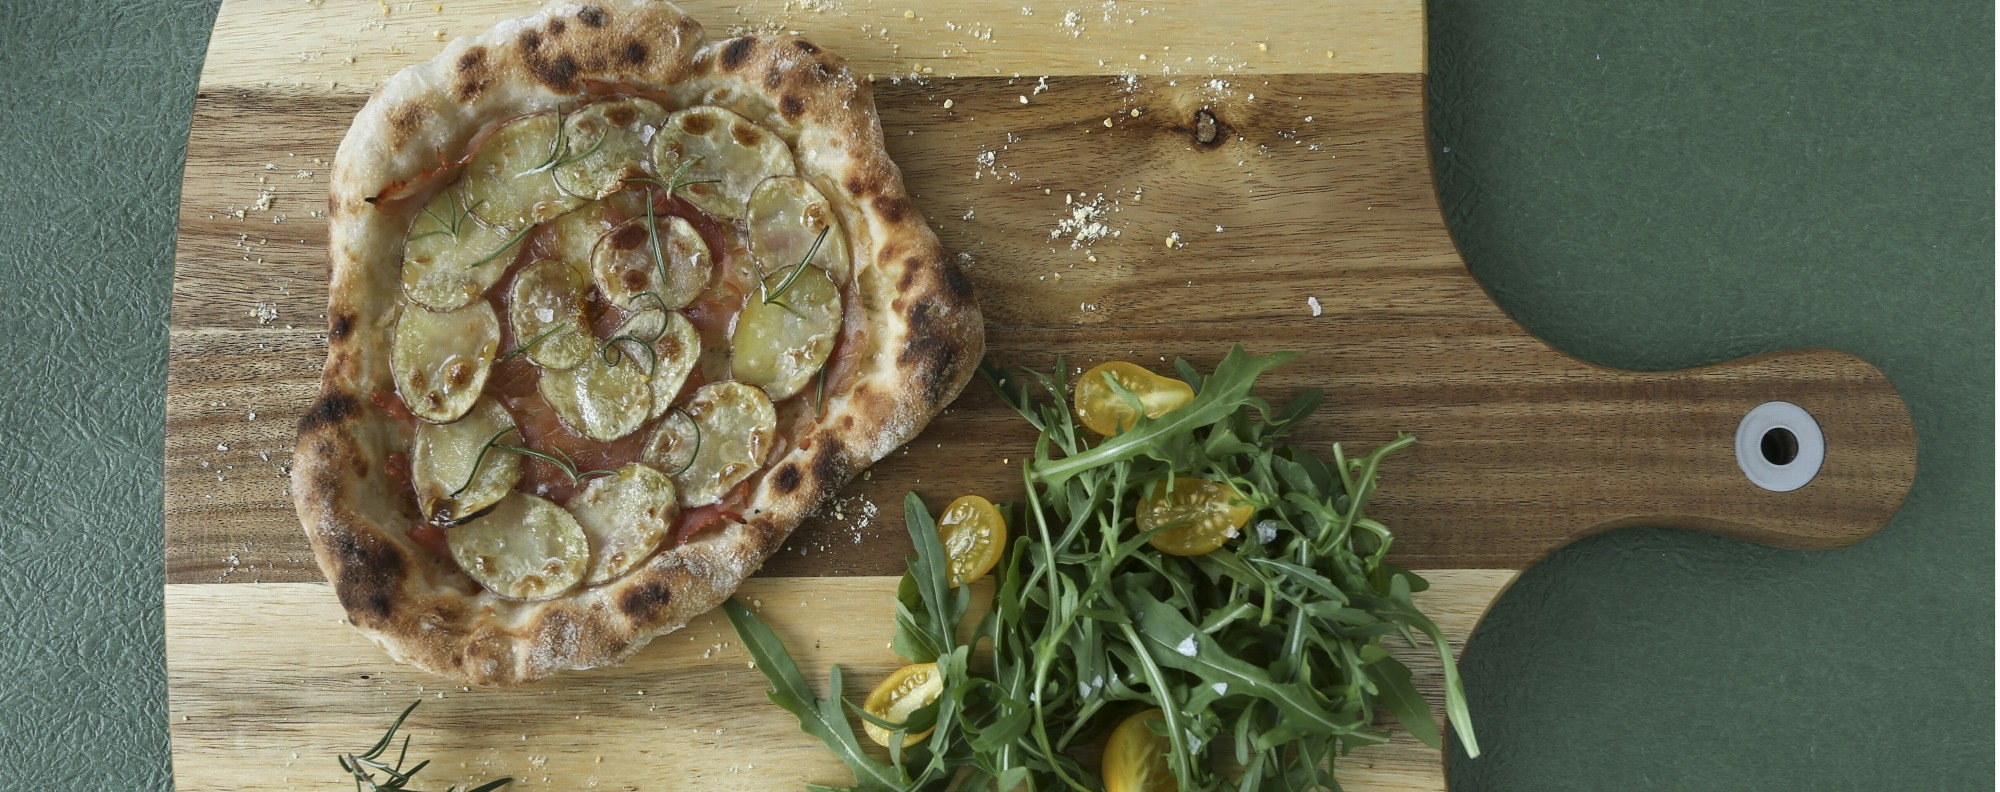 Pizza with potato, ham and rosemary. Photography: Jonathan Wong